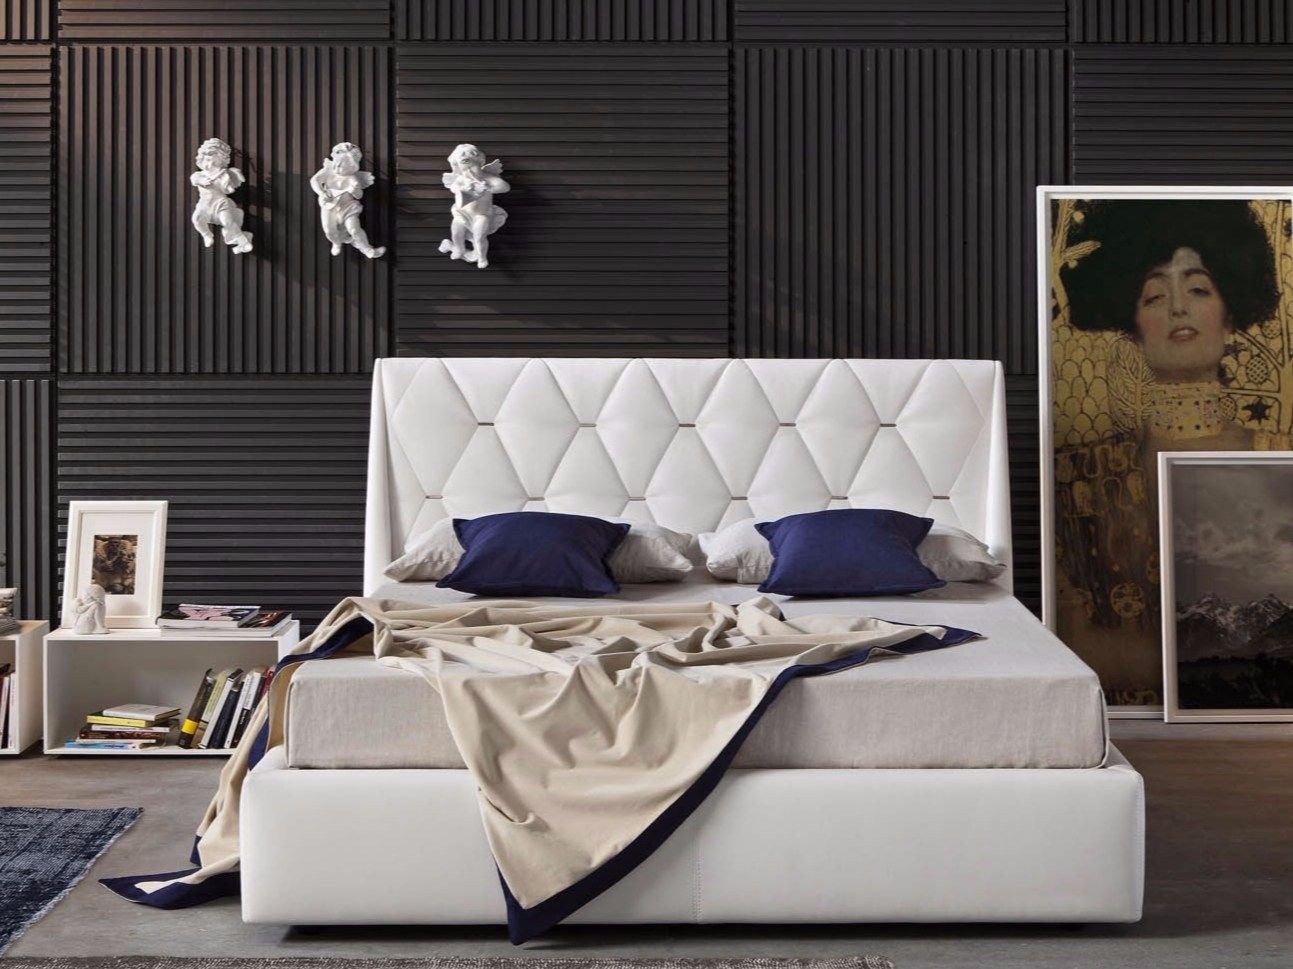 Bed Headboard Designs 165 best 床 images on pinterest   bedroom designs, bed headboards